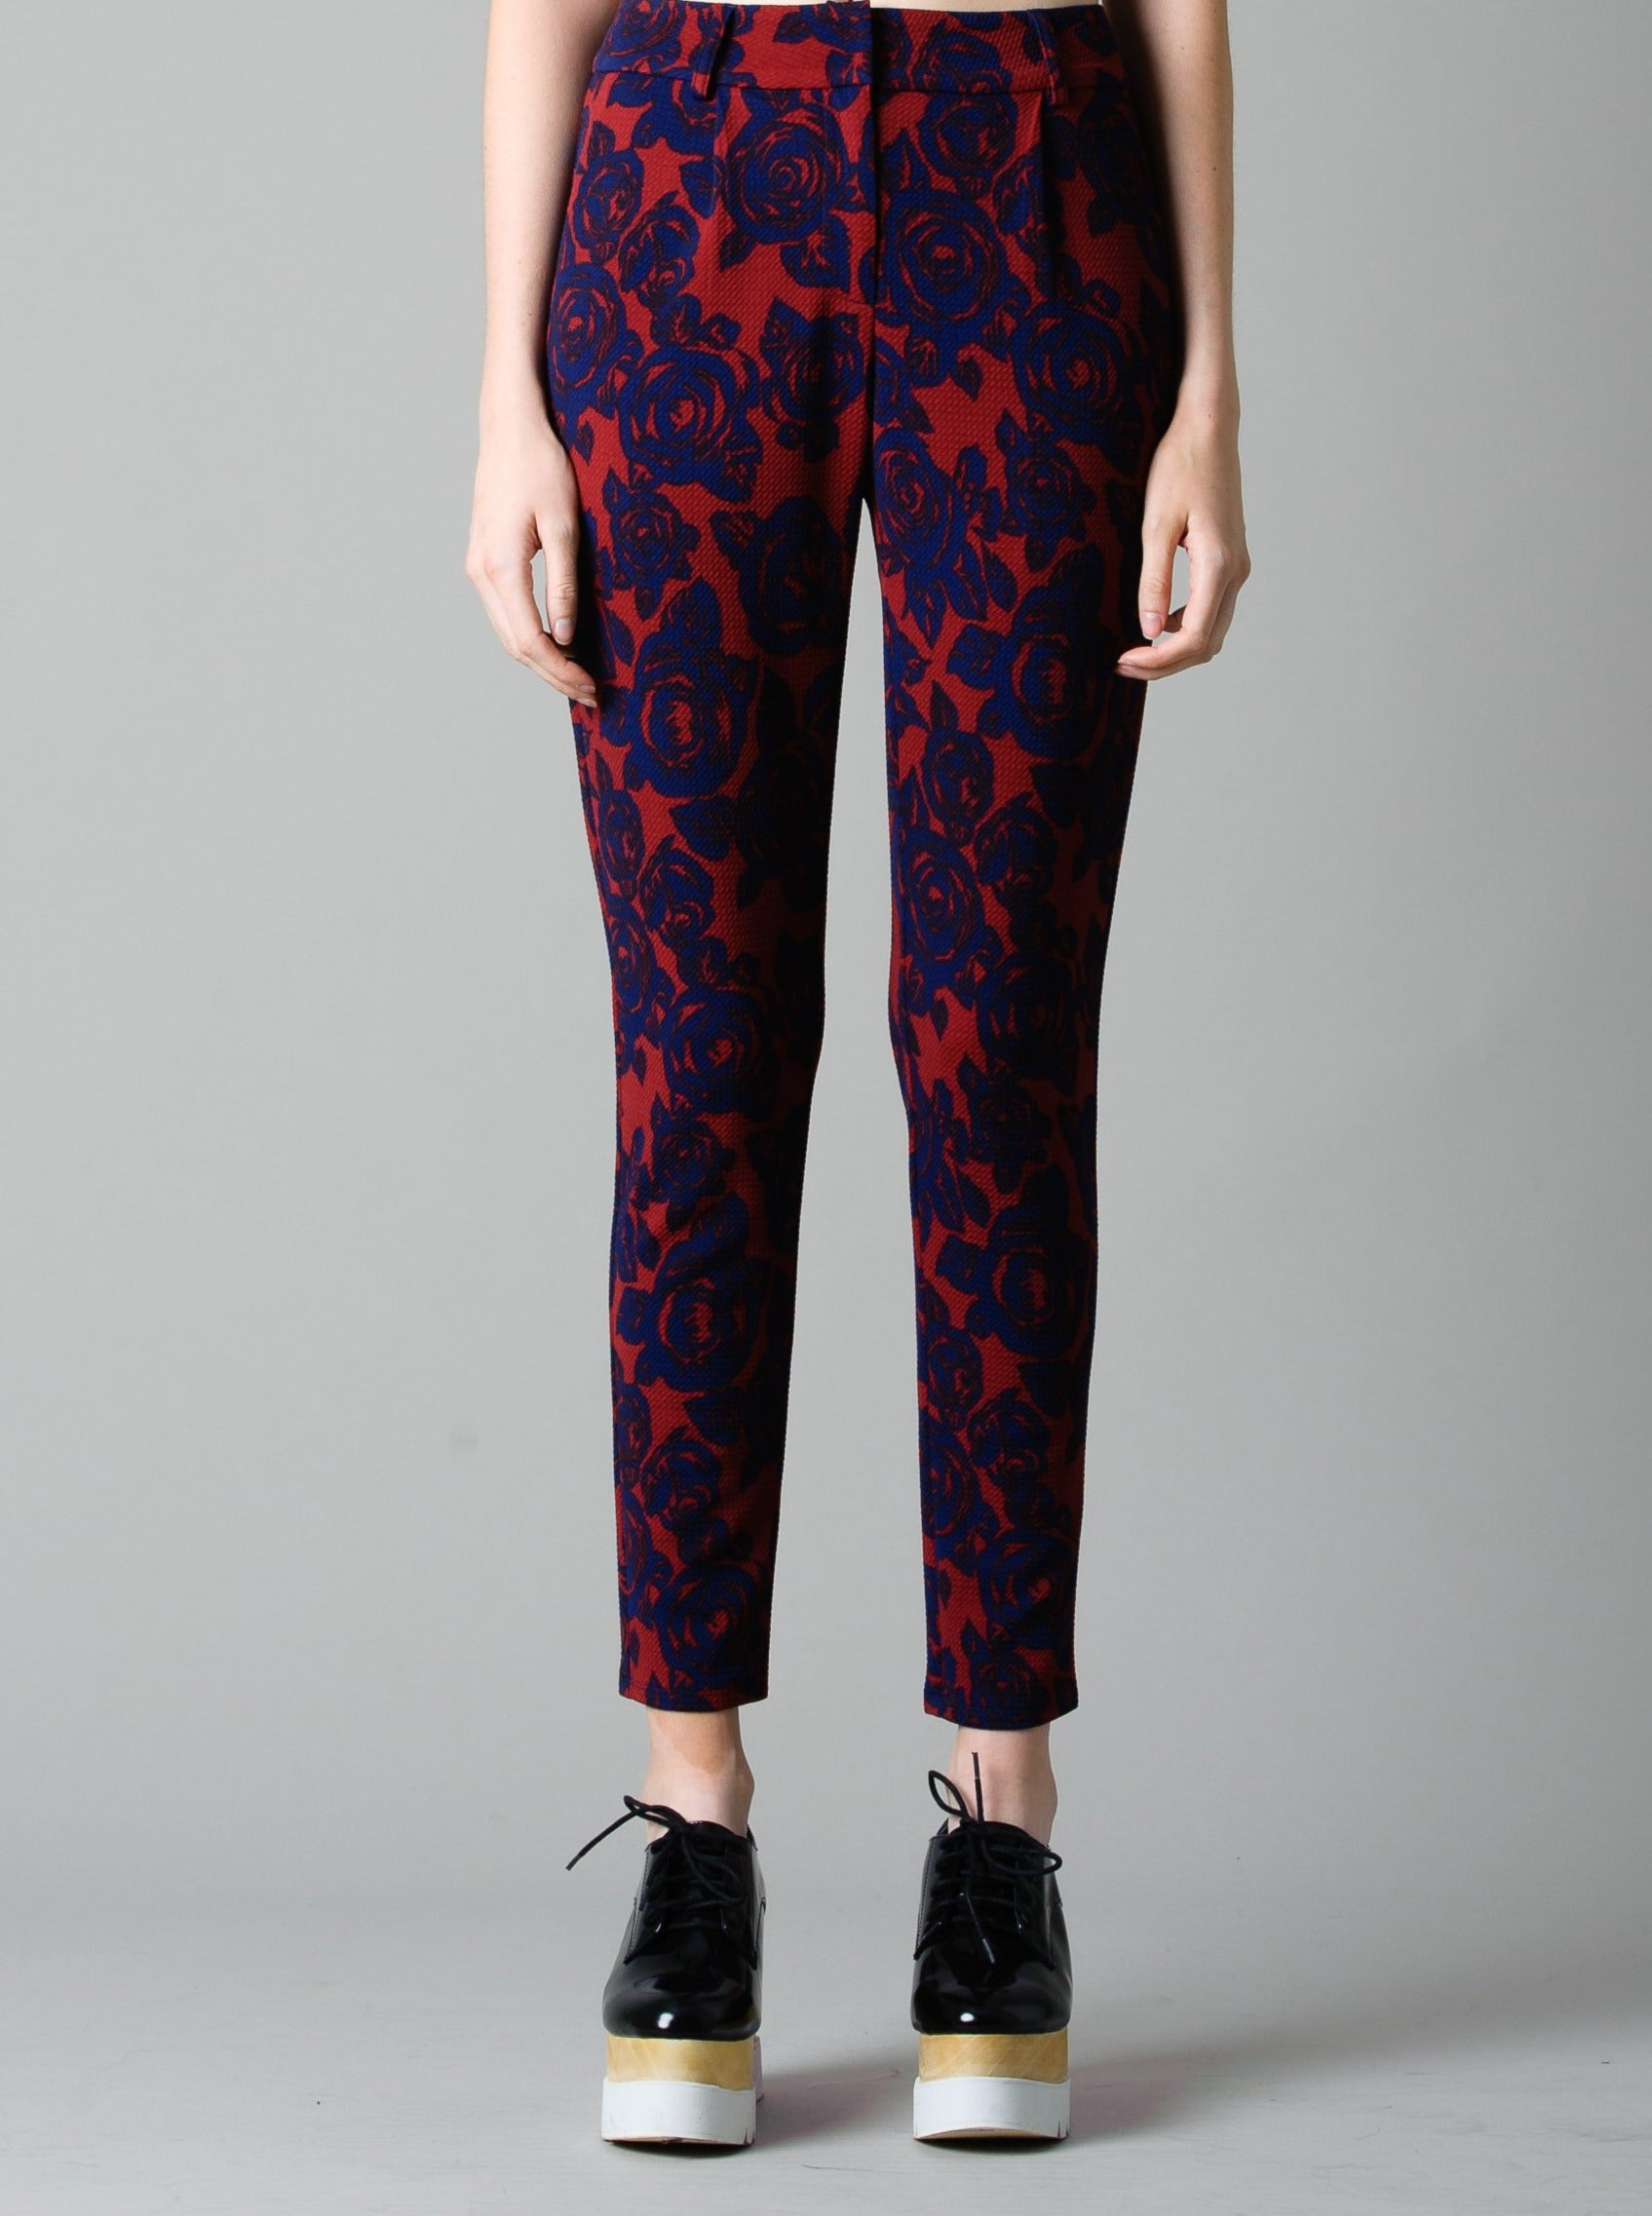 NAVY ROSE KNIT PANTS